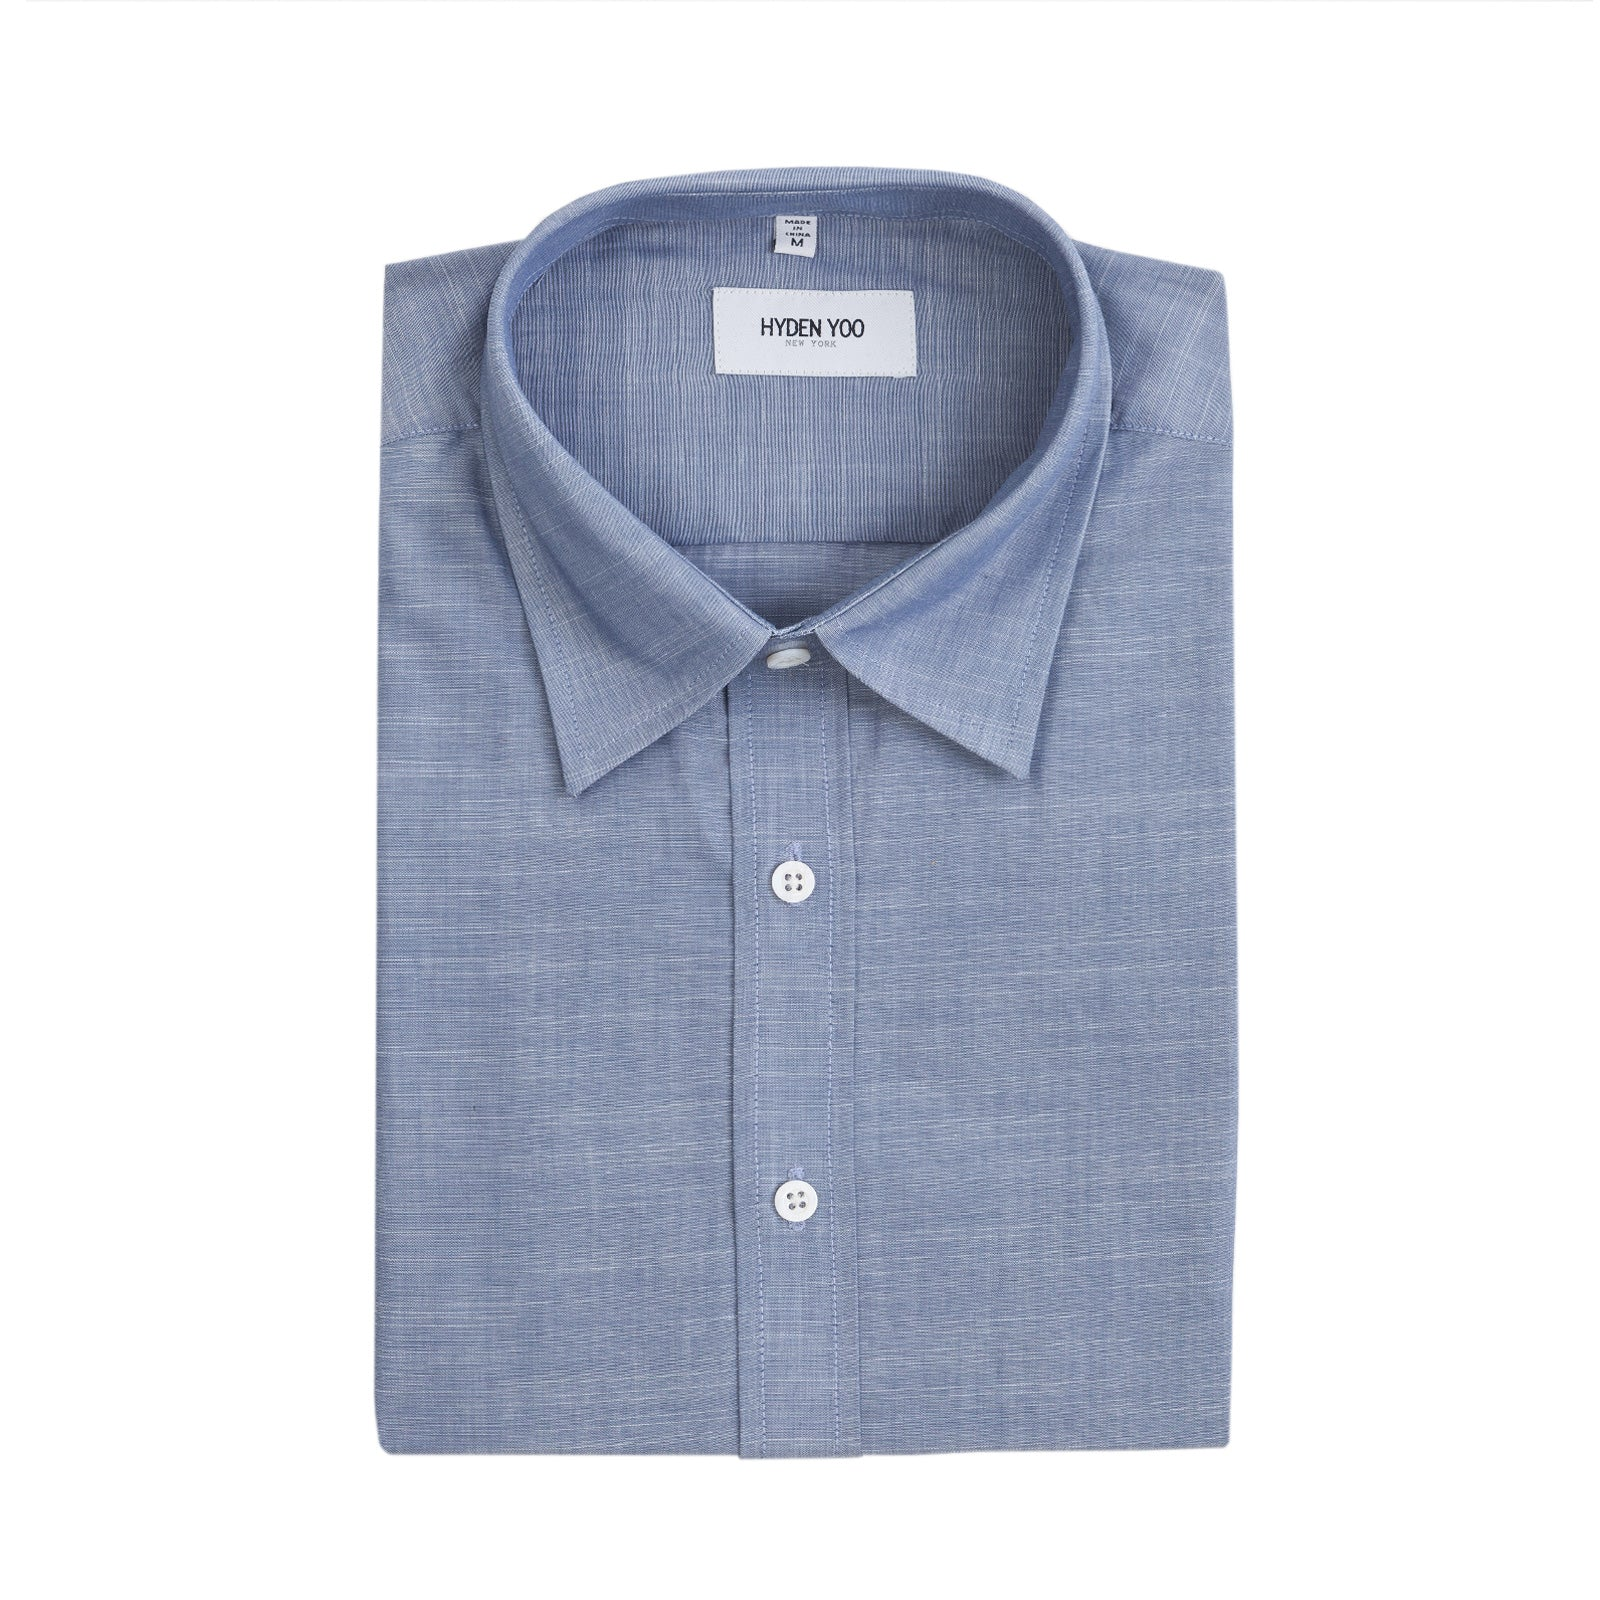 PRESTON SHIRT - NAVY CHAMBRAY